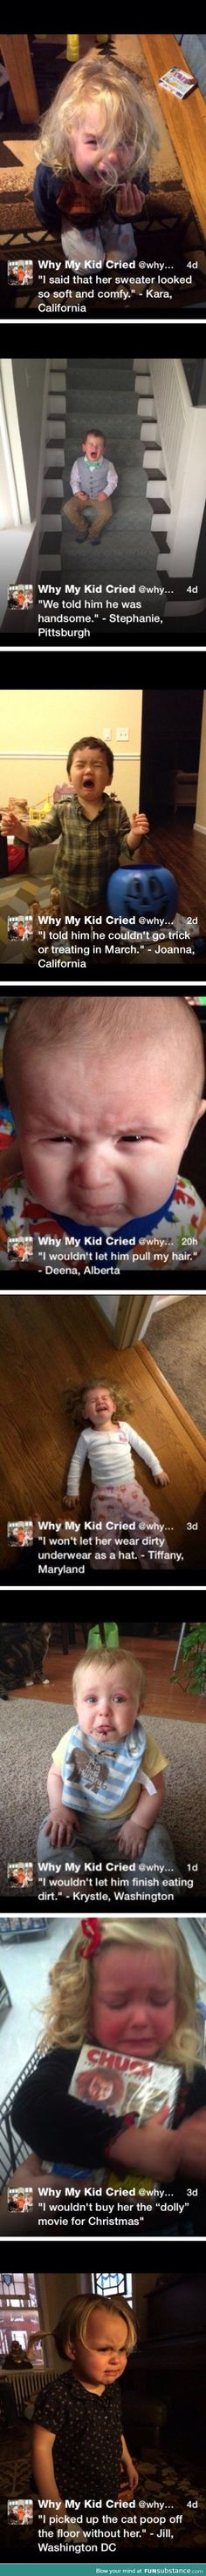 Why my kid cried